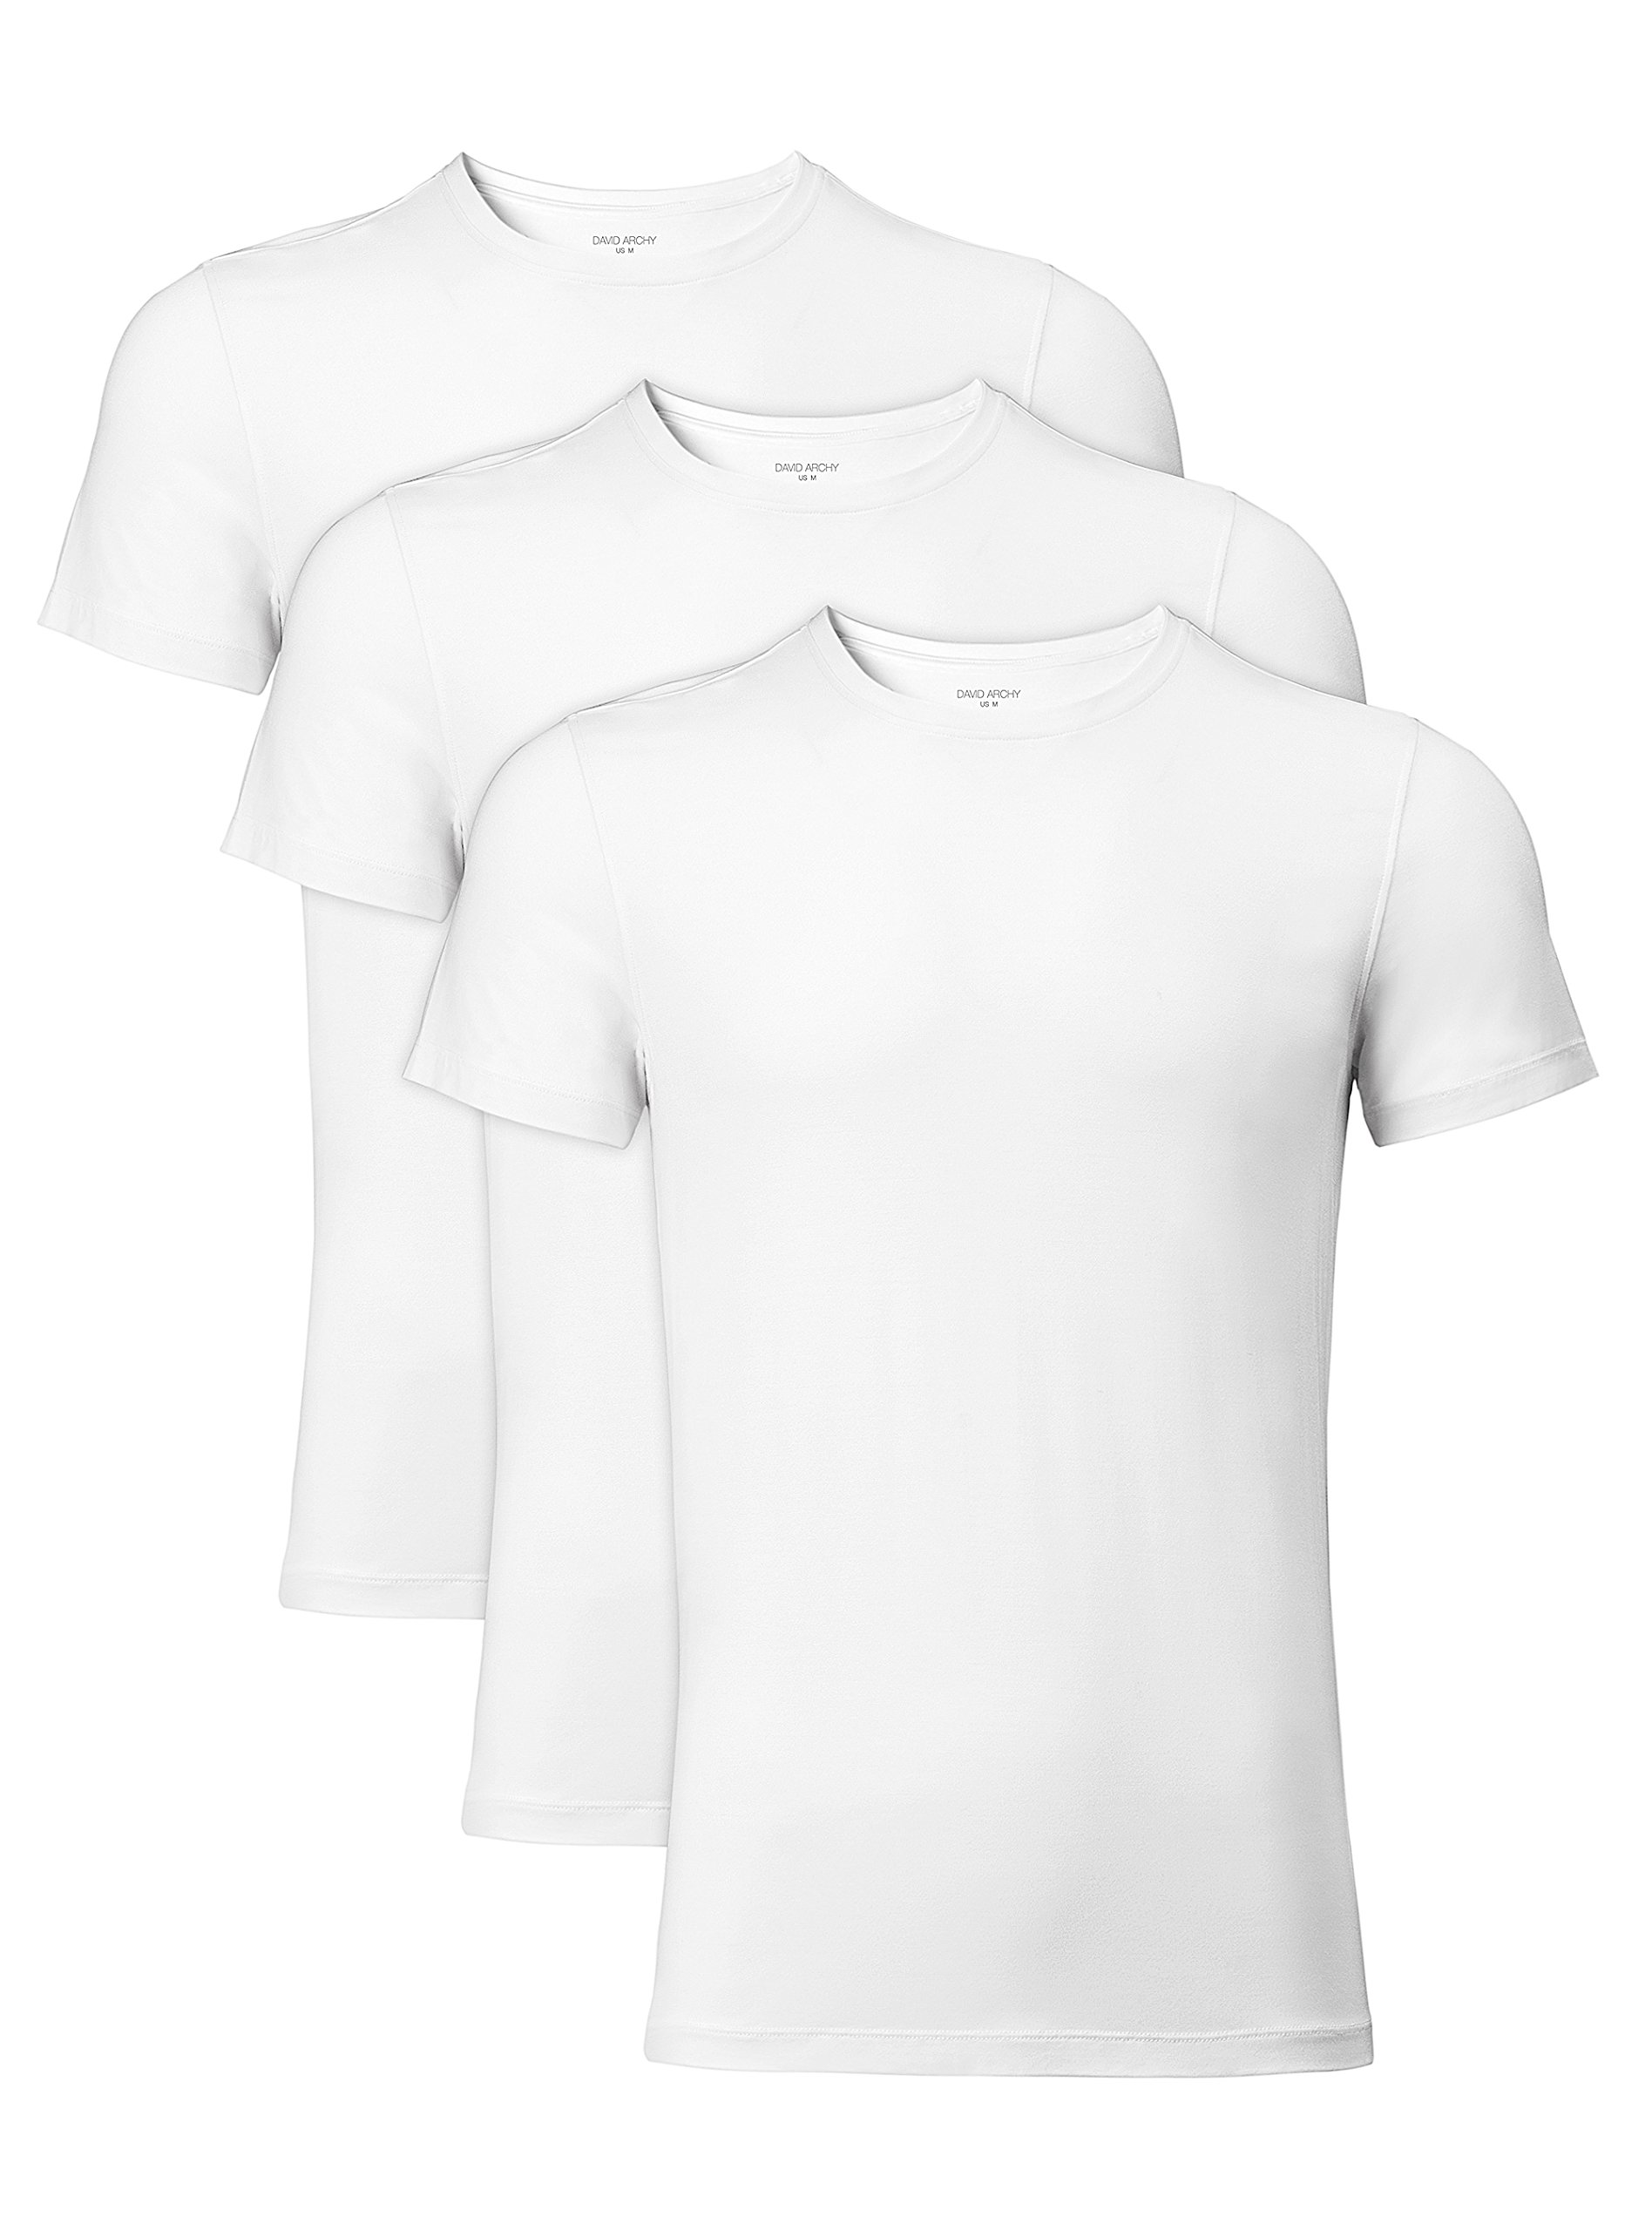 David Archy Men's 3 Pack Soft Comfy Bamboo Rayon Undershirts Breathable Crew Neck Slim Fit Tees Short Sleeve T-Shirts (M, White) by David Archy